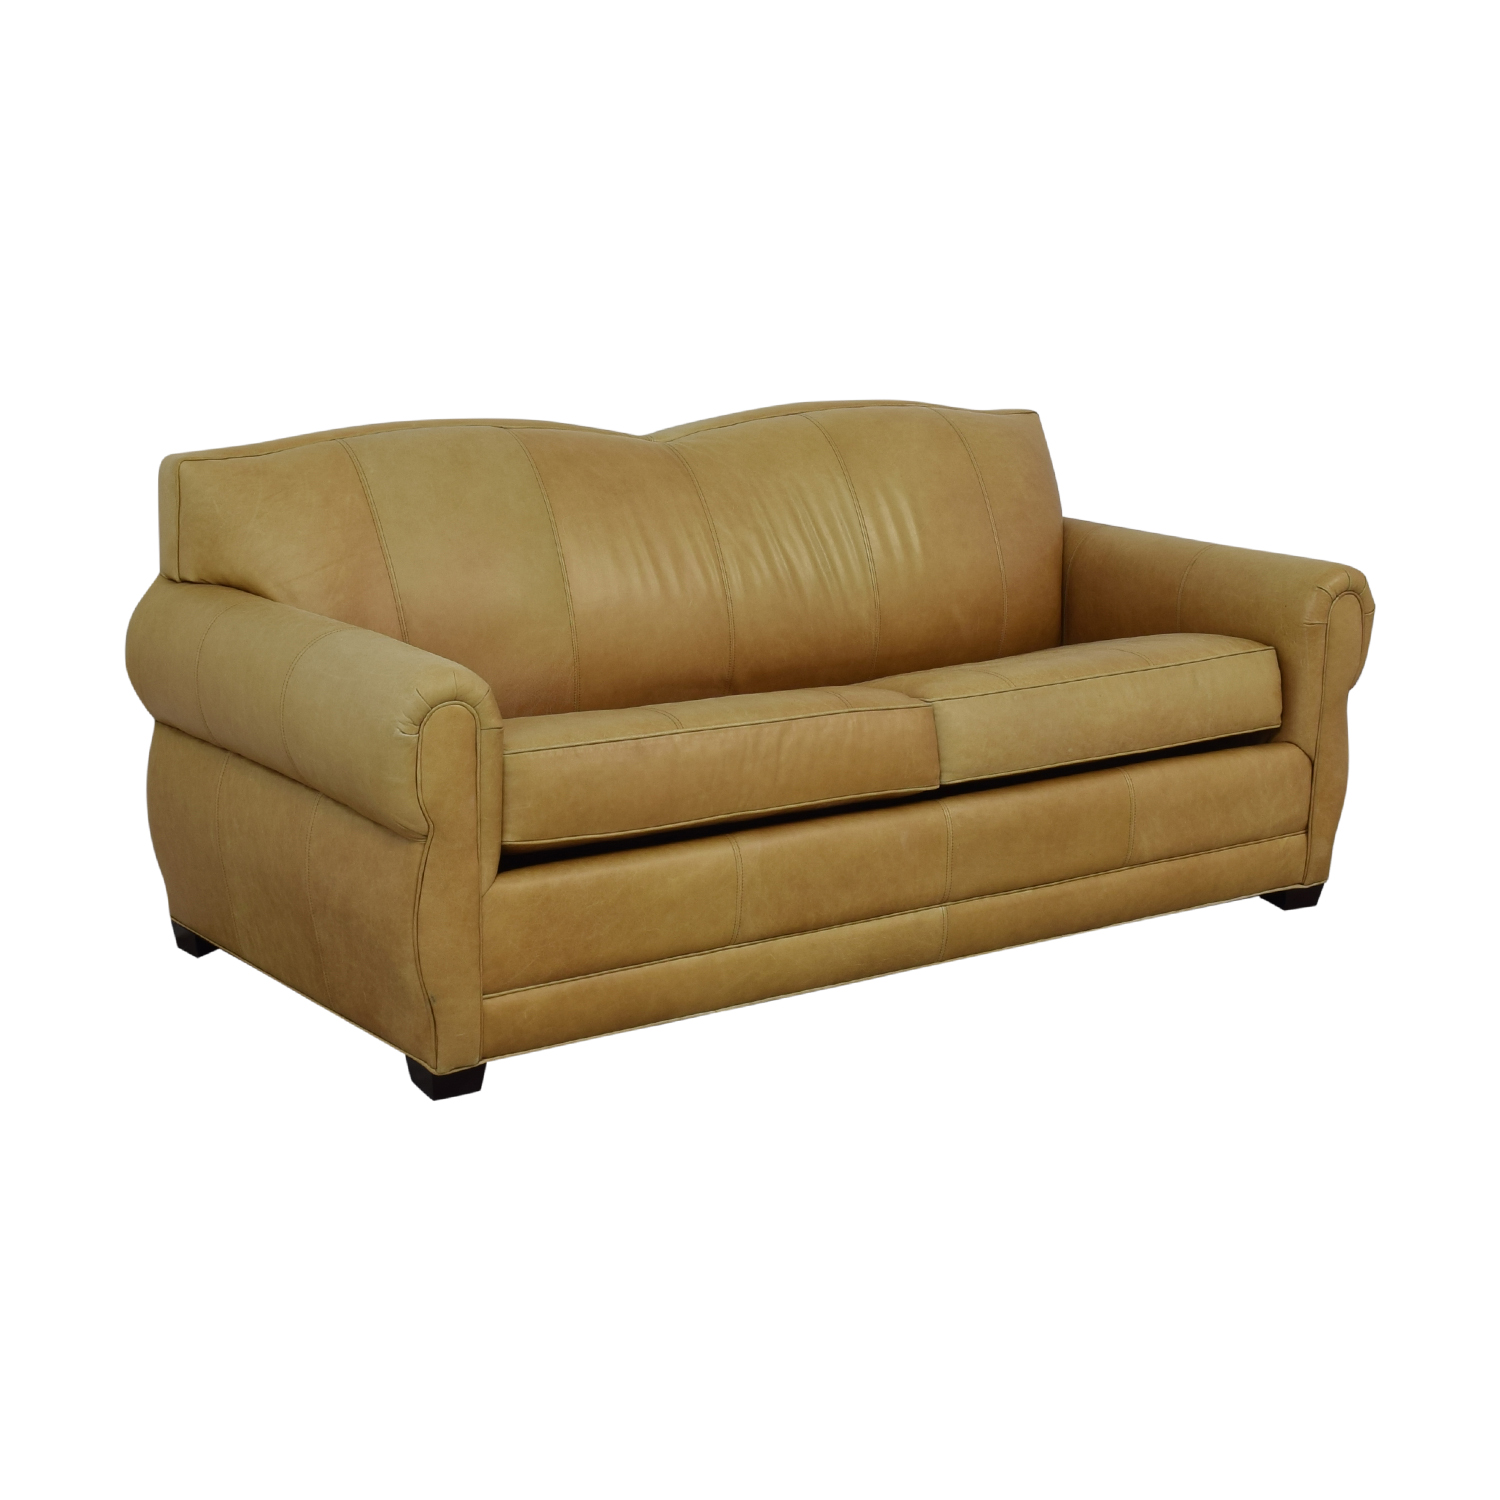 buy Thomasville Thomasville Queen Sleeper Sofa online